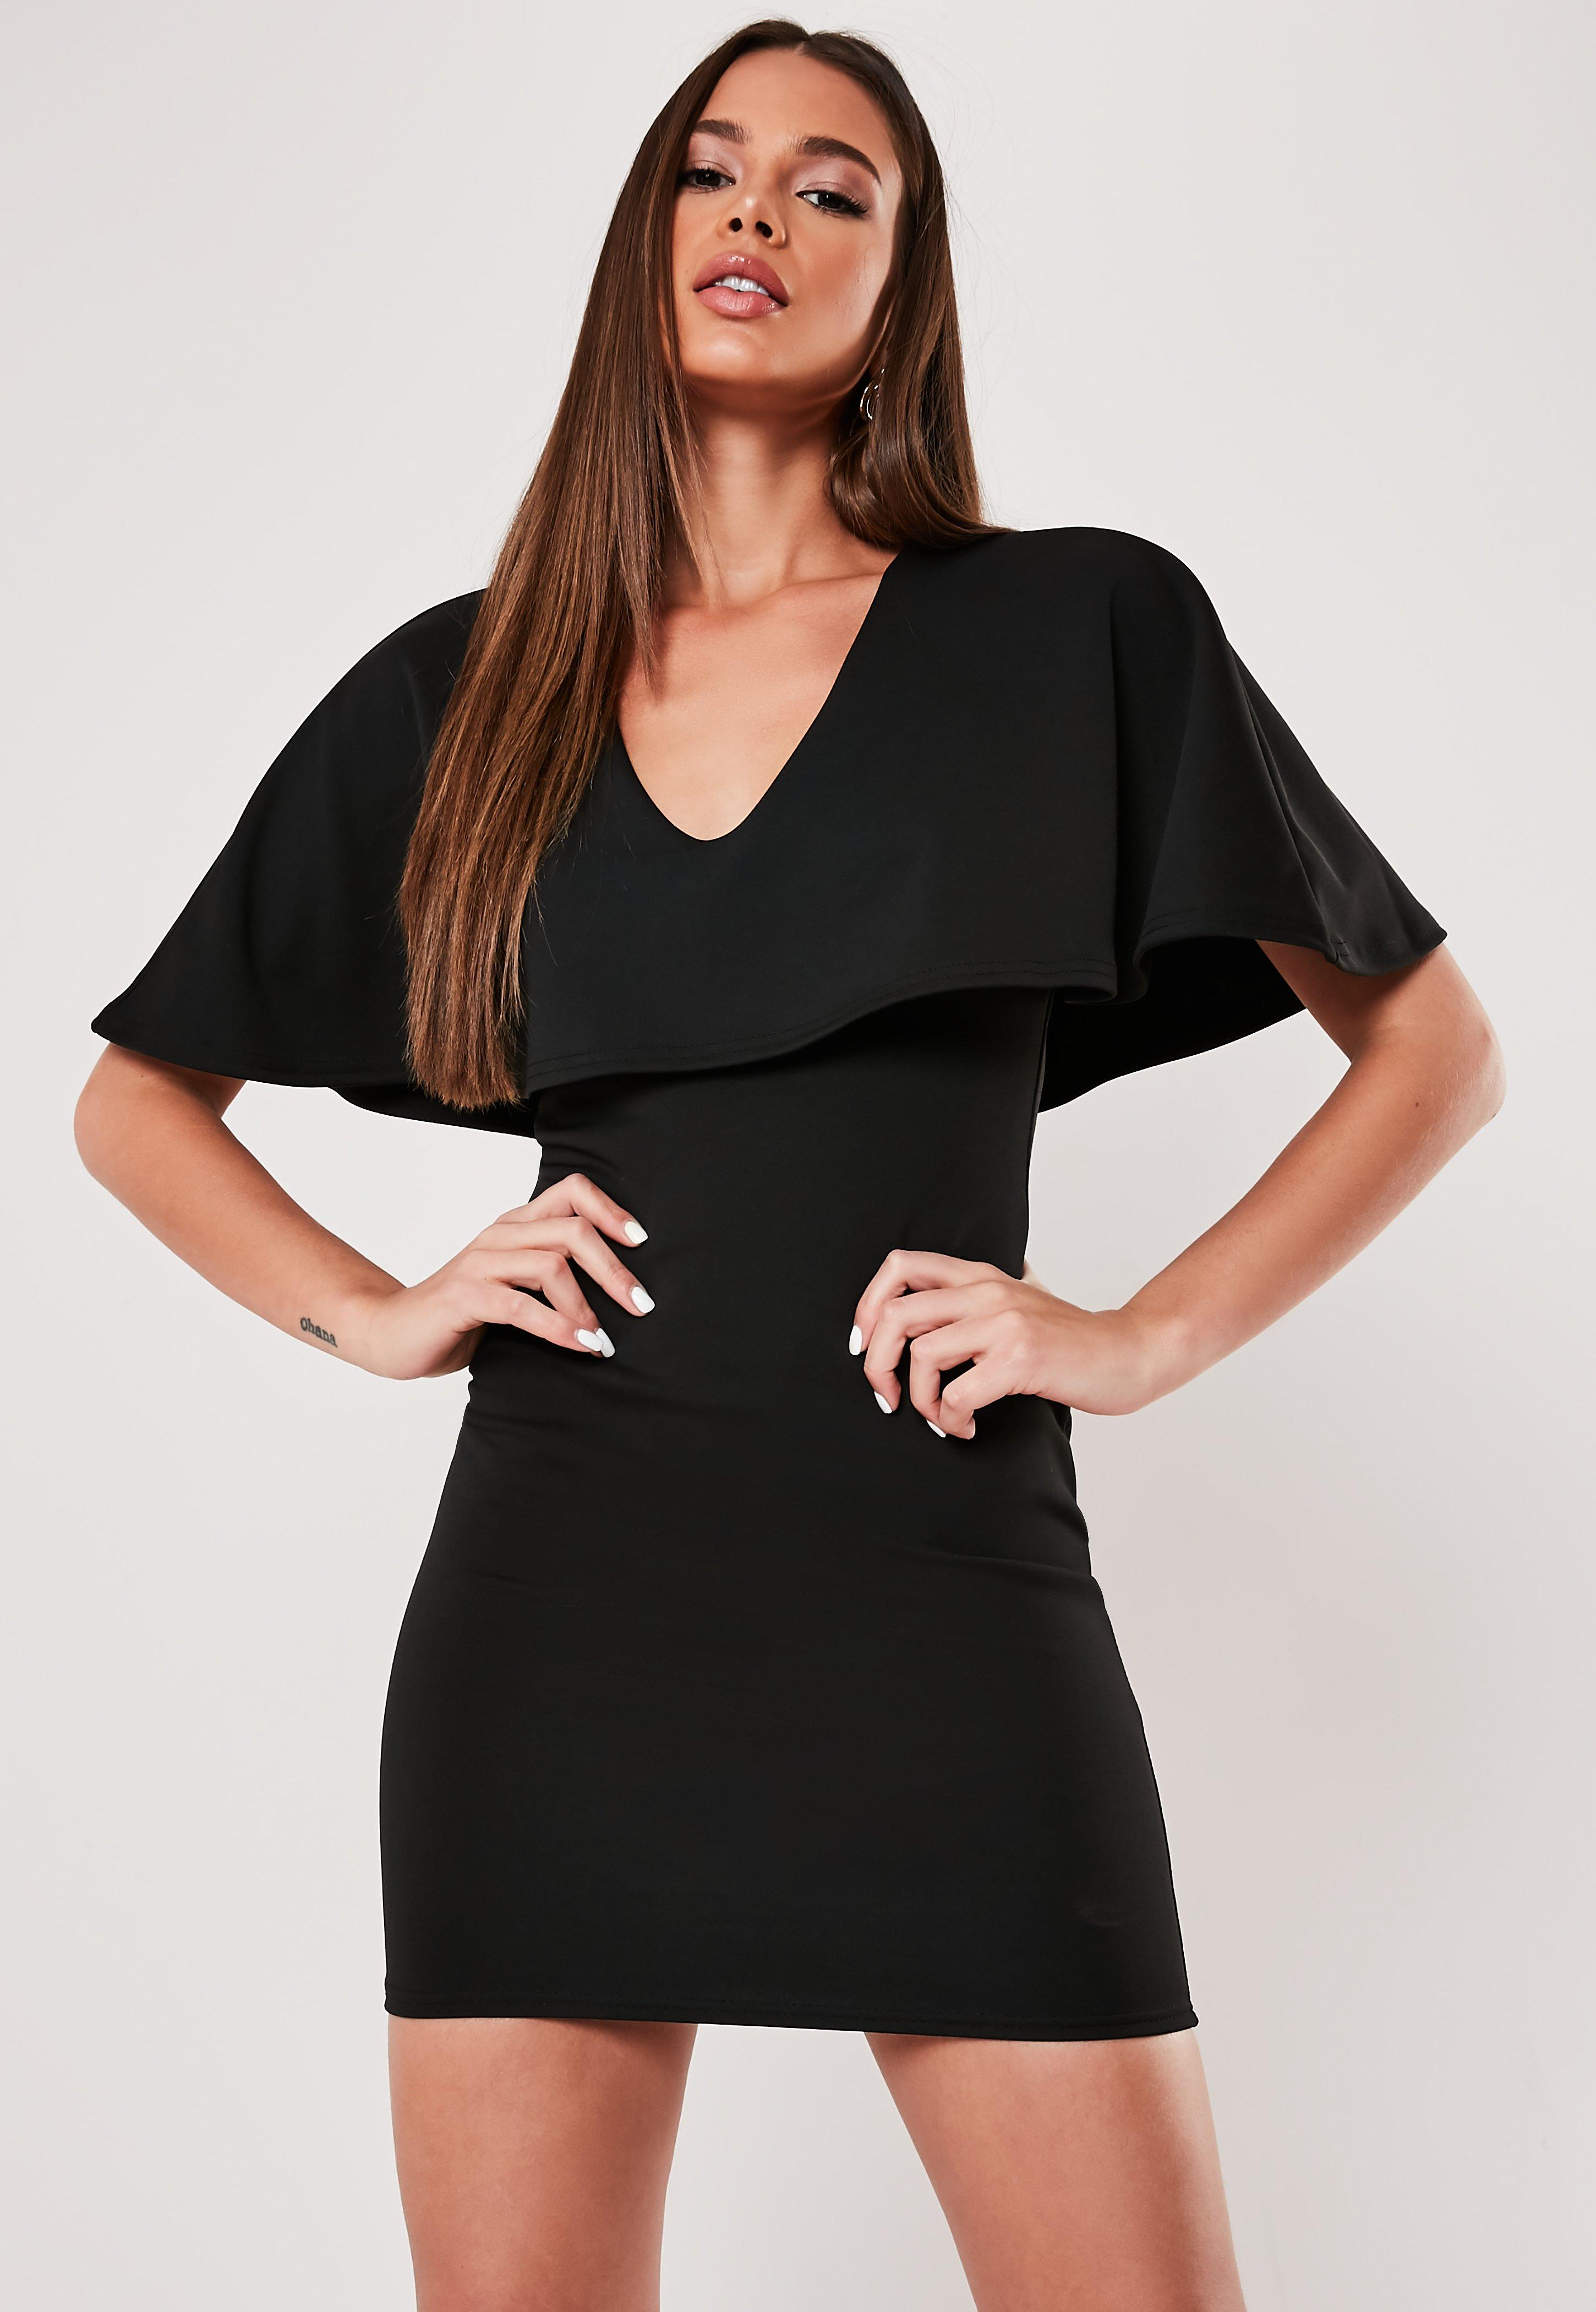 2b7e79ea1b04 Cheap Clothes Online - Women's Sale Clothing | Missguided